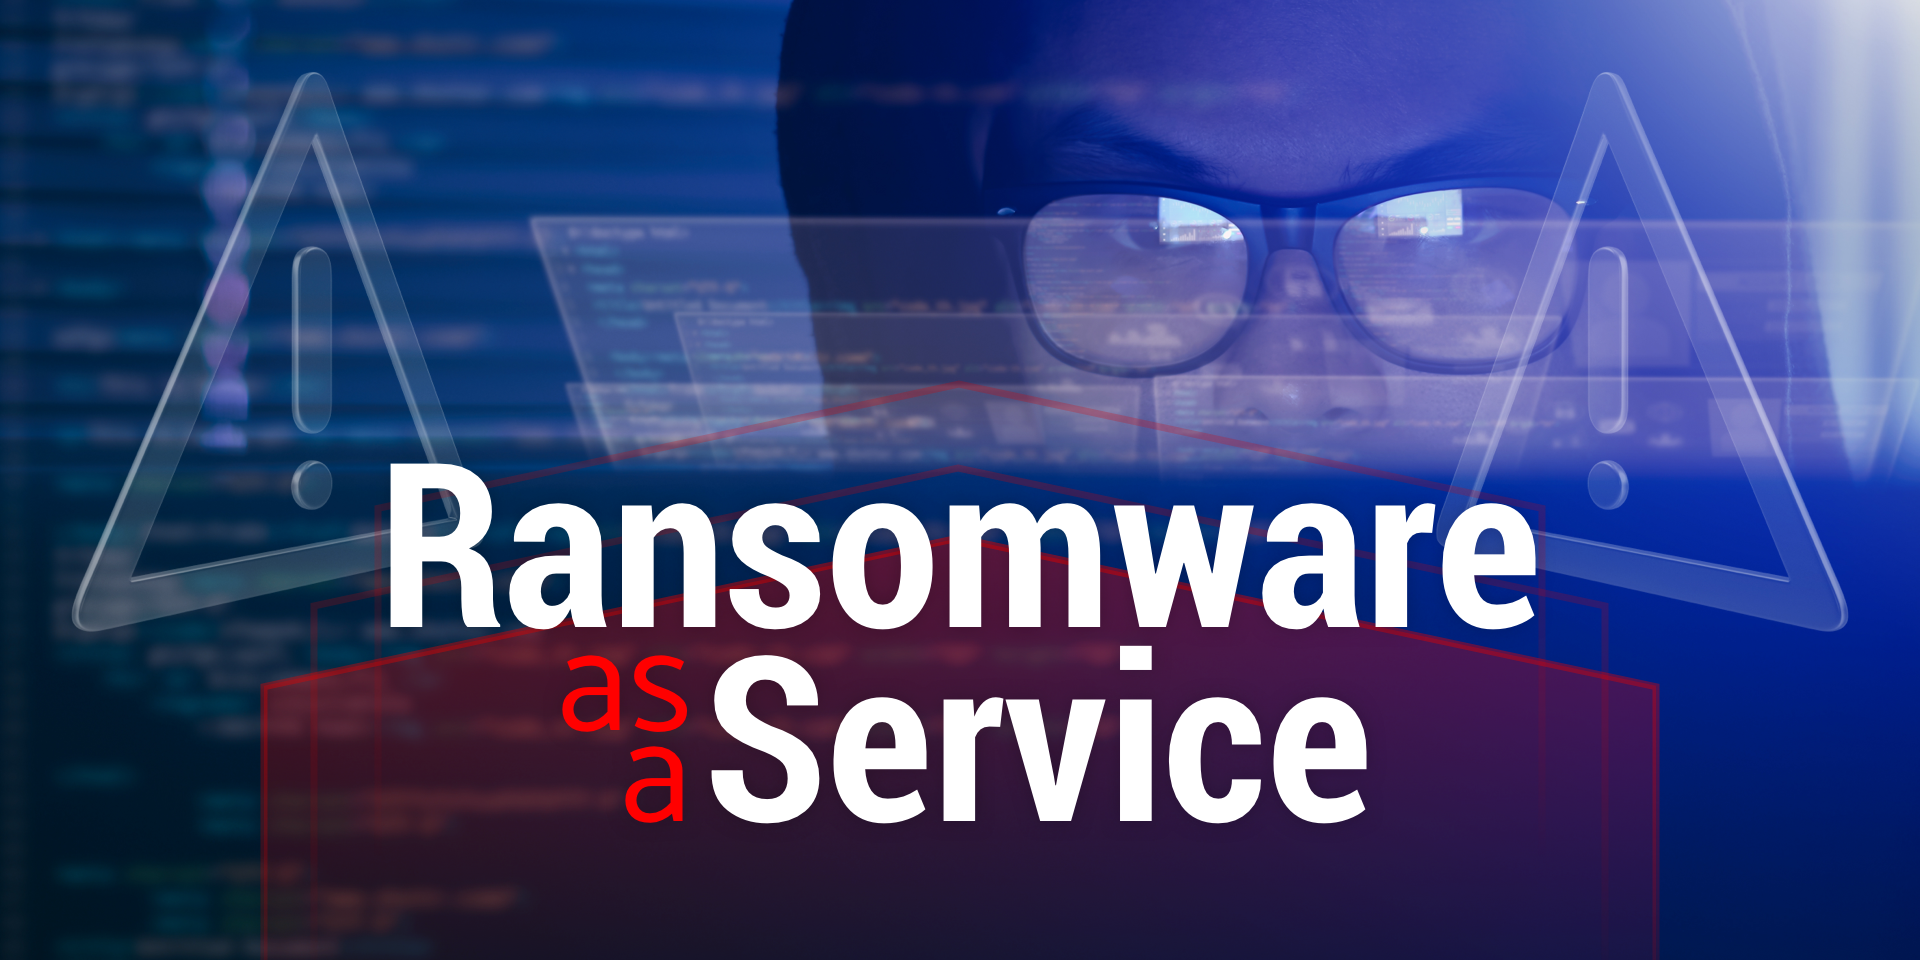 Ransomware as a Service, Today's Threat